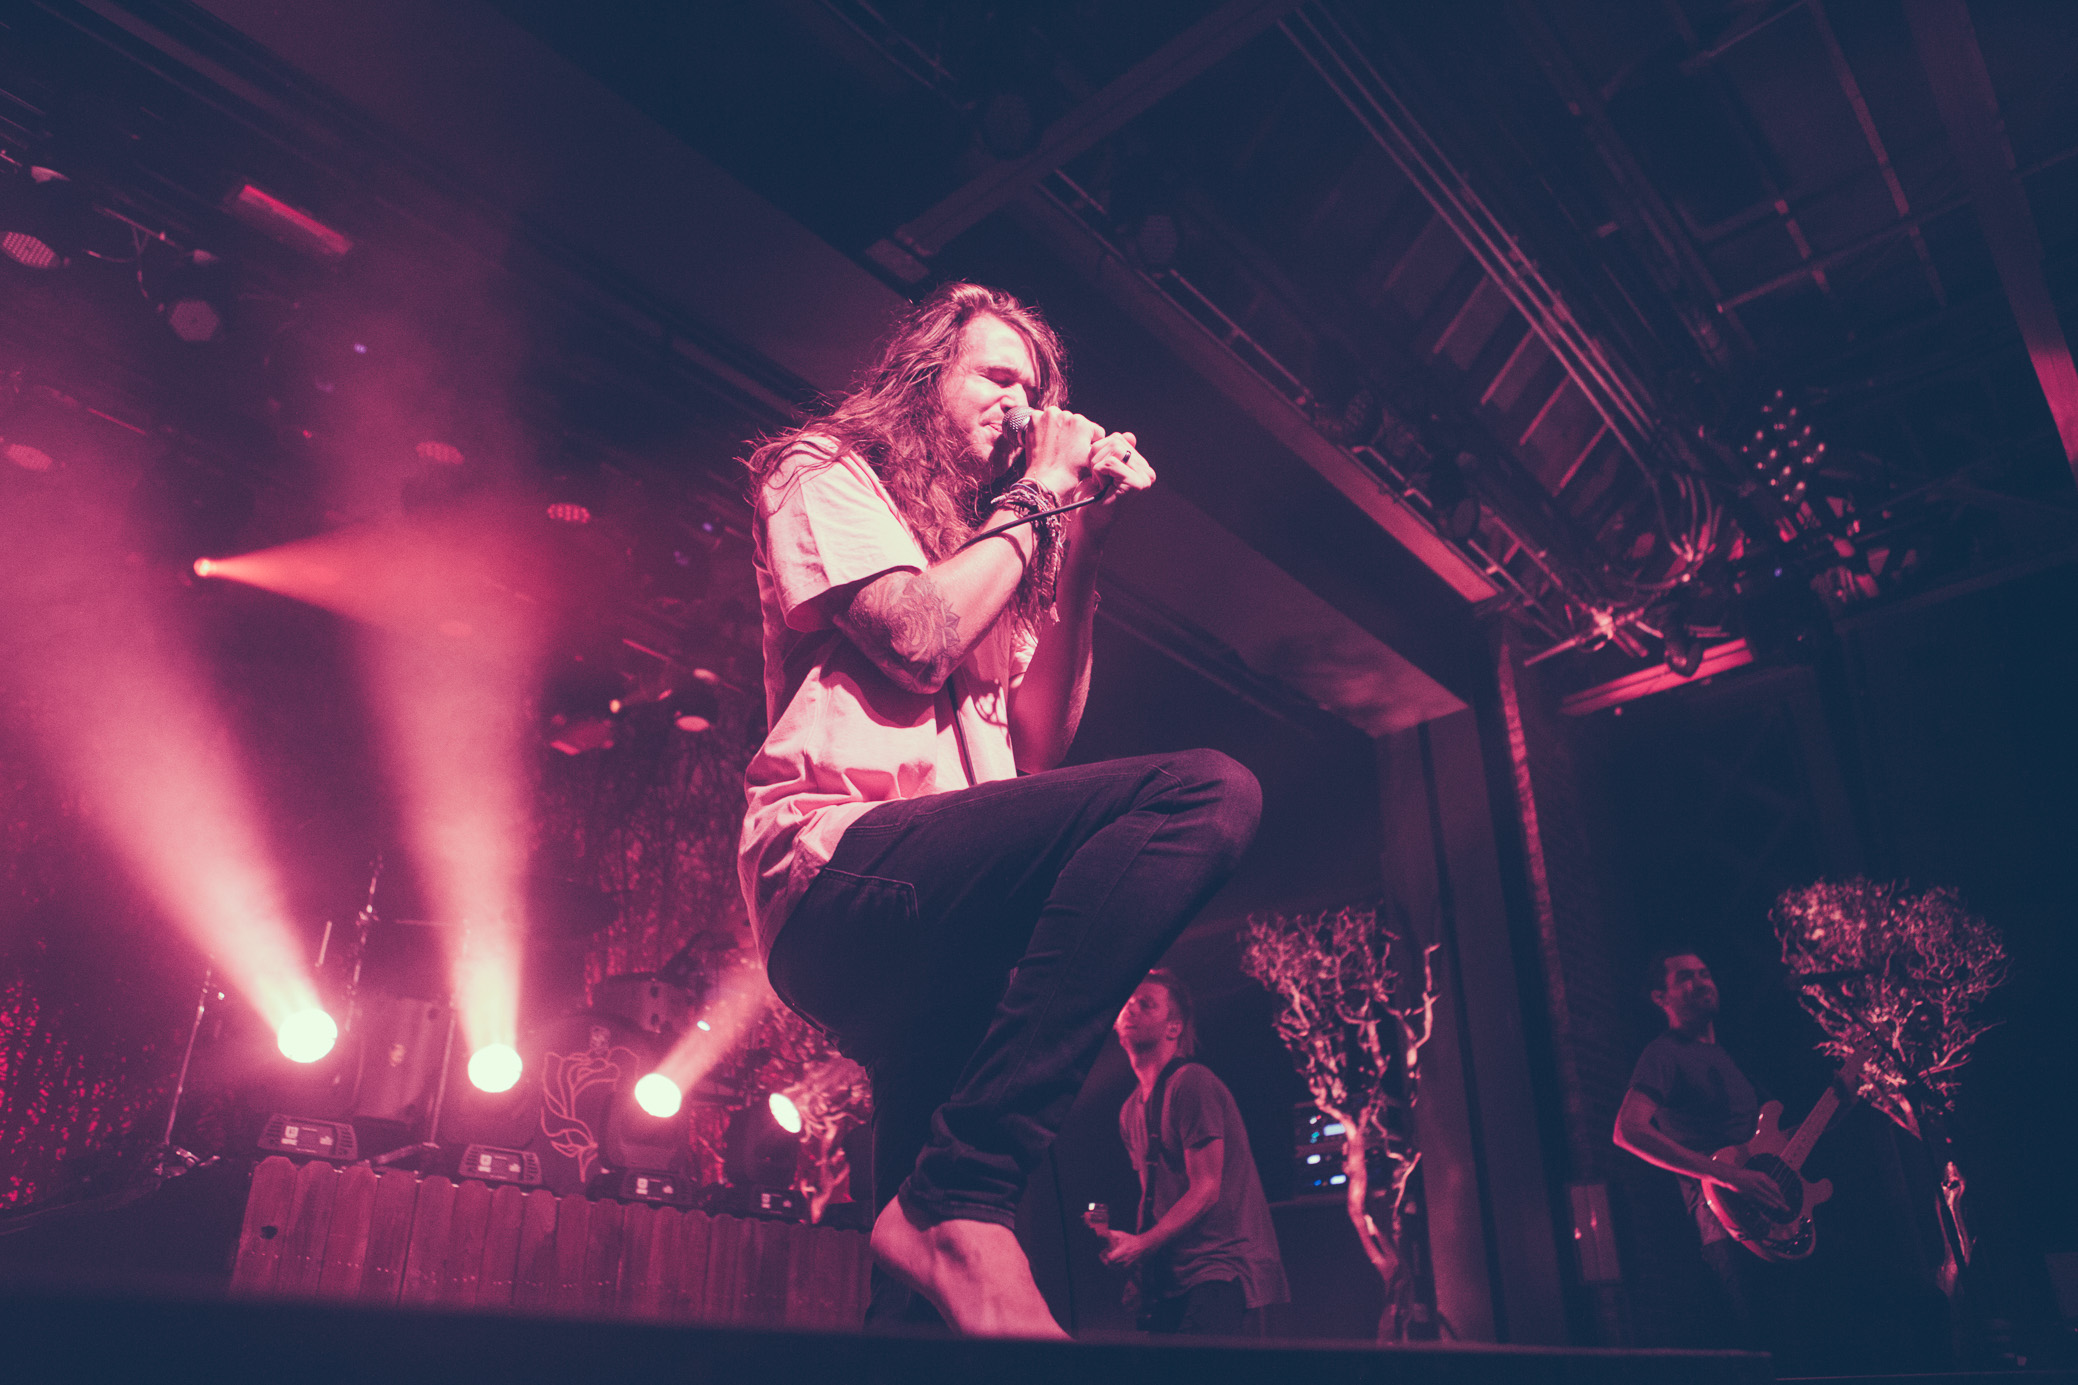 Mayday Parade performs in concert at Iron City in Birmingham, Alabama on October 4th, 2018. (Photo by David A. Smith/DSmithScenes)